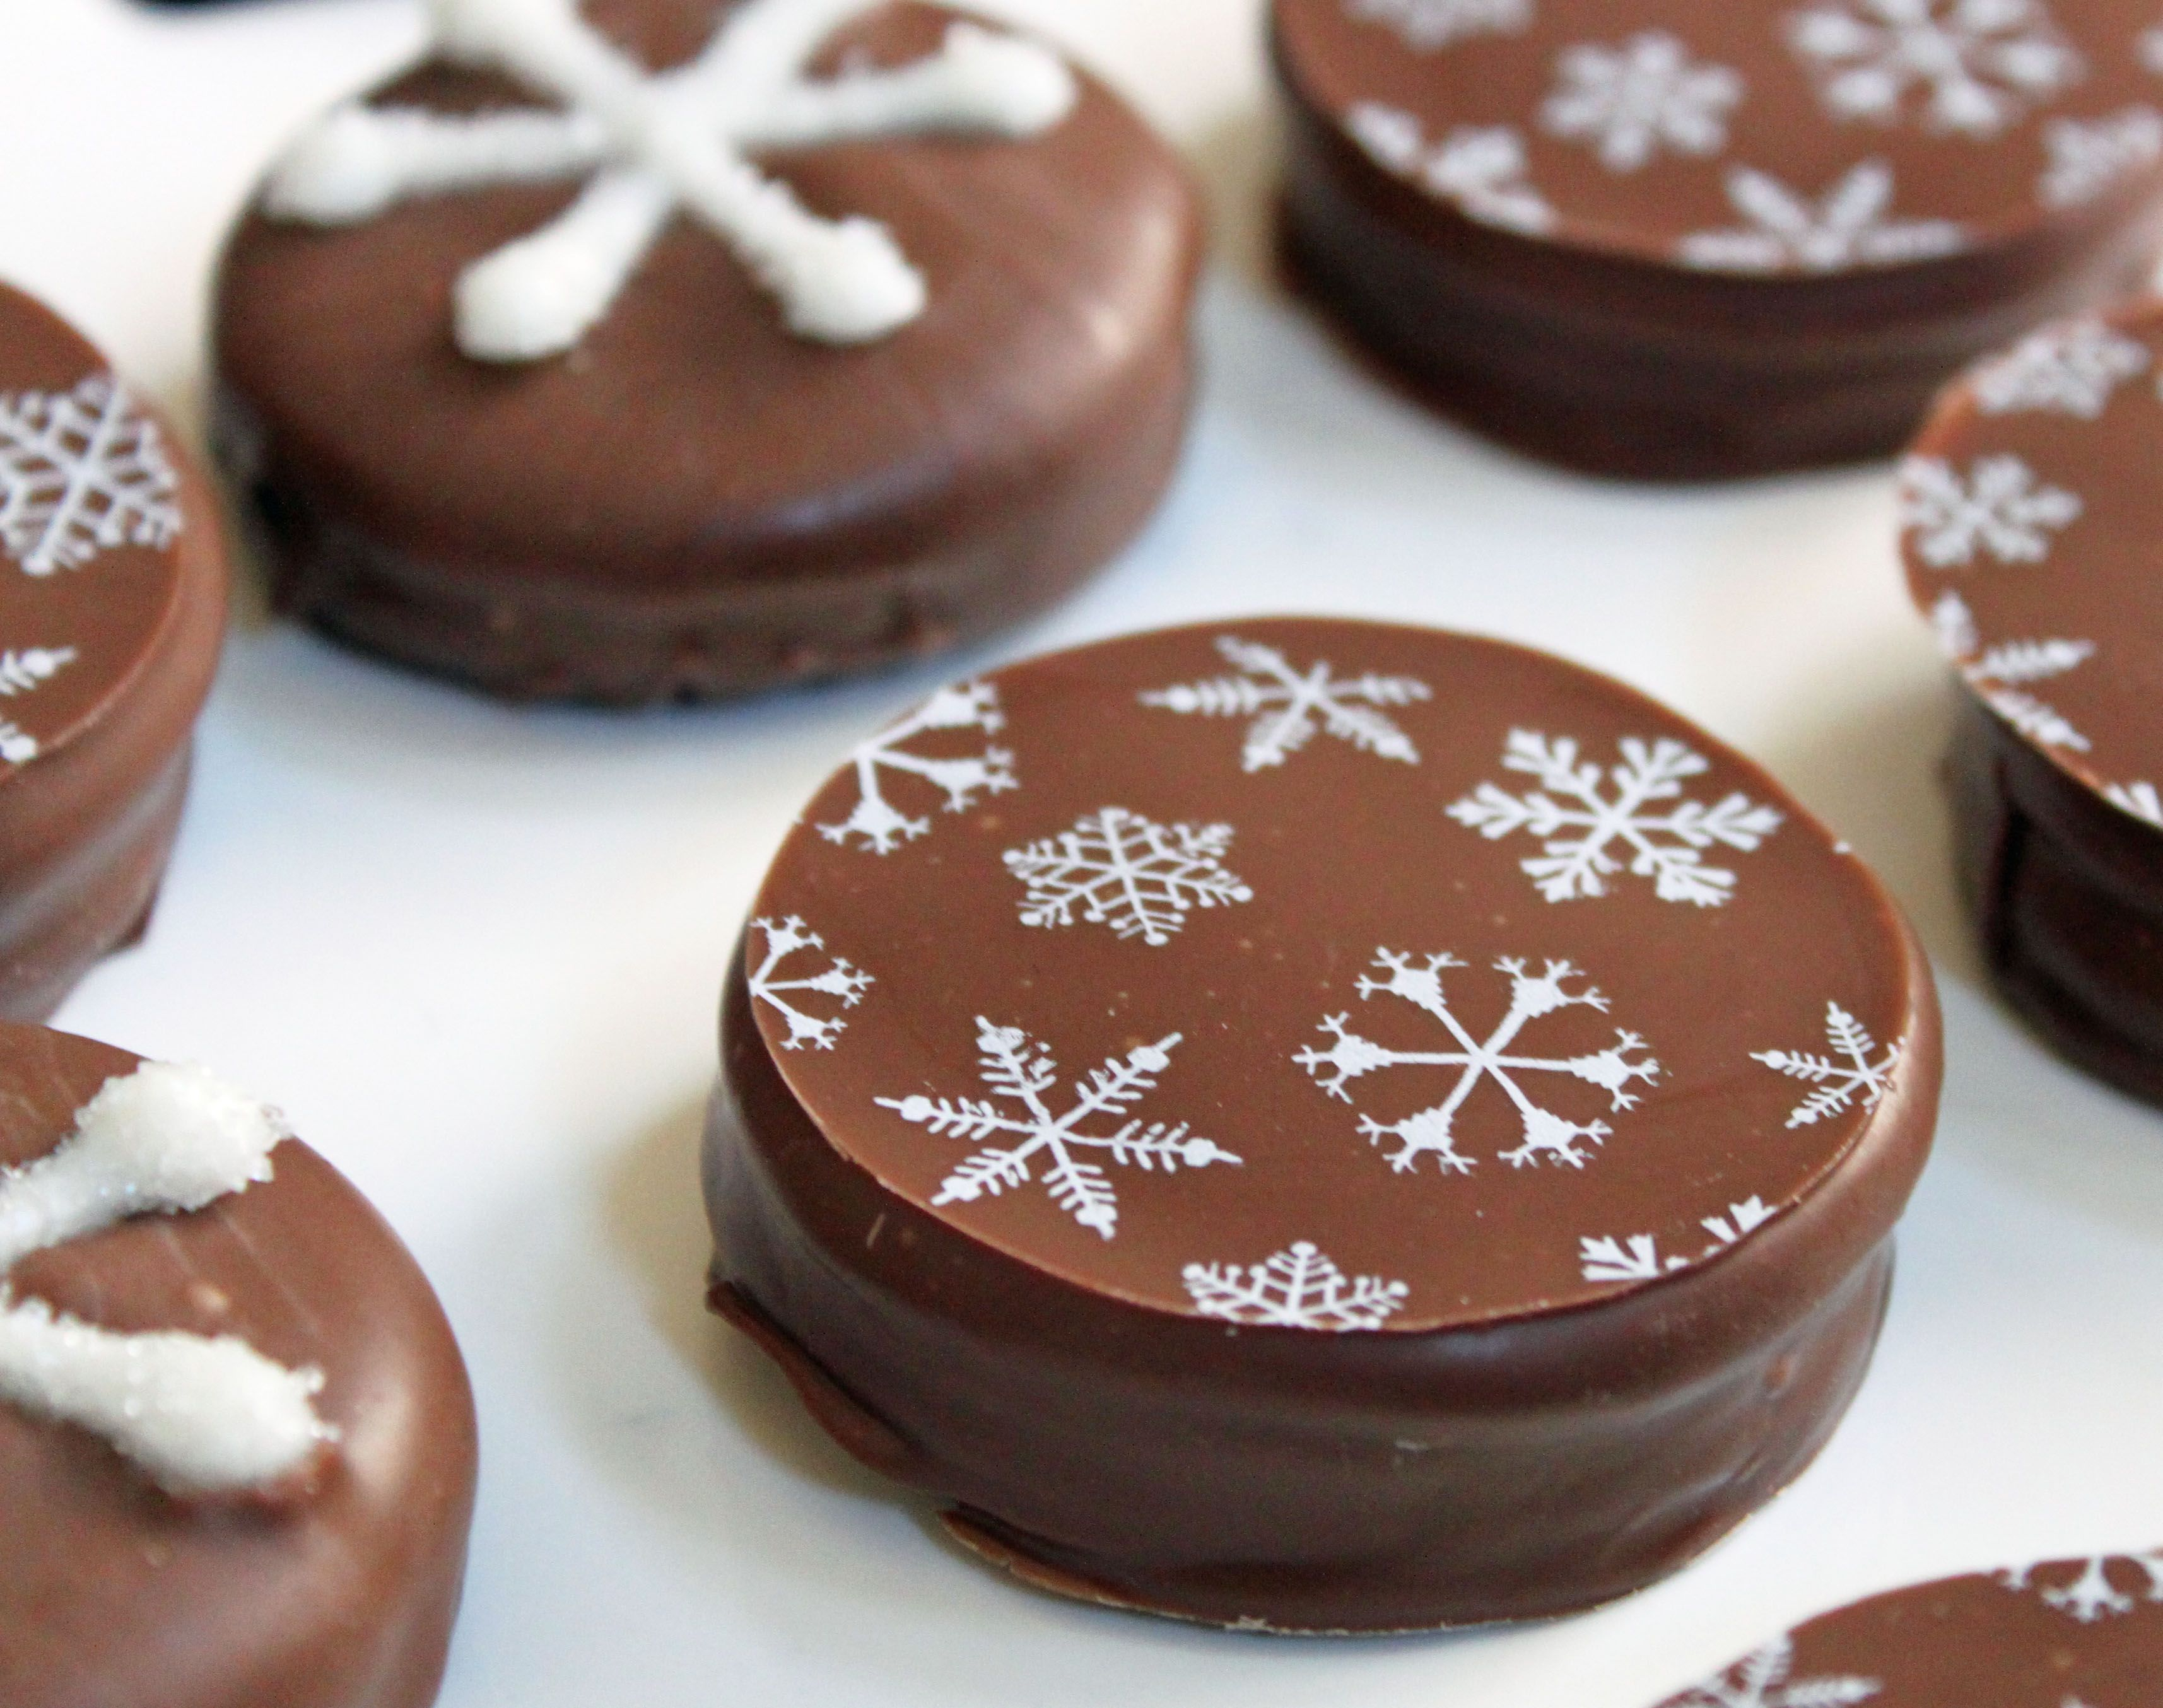 117 best Chocolate Transfer ideas images on Pinterest | Chocolate ...